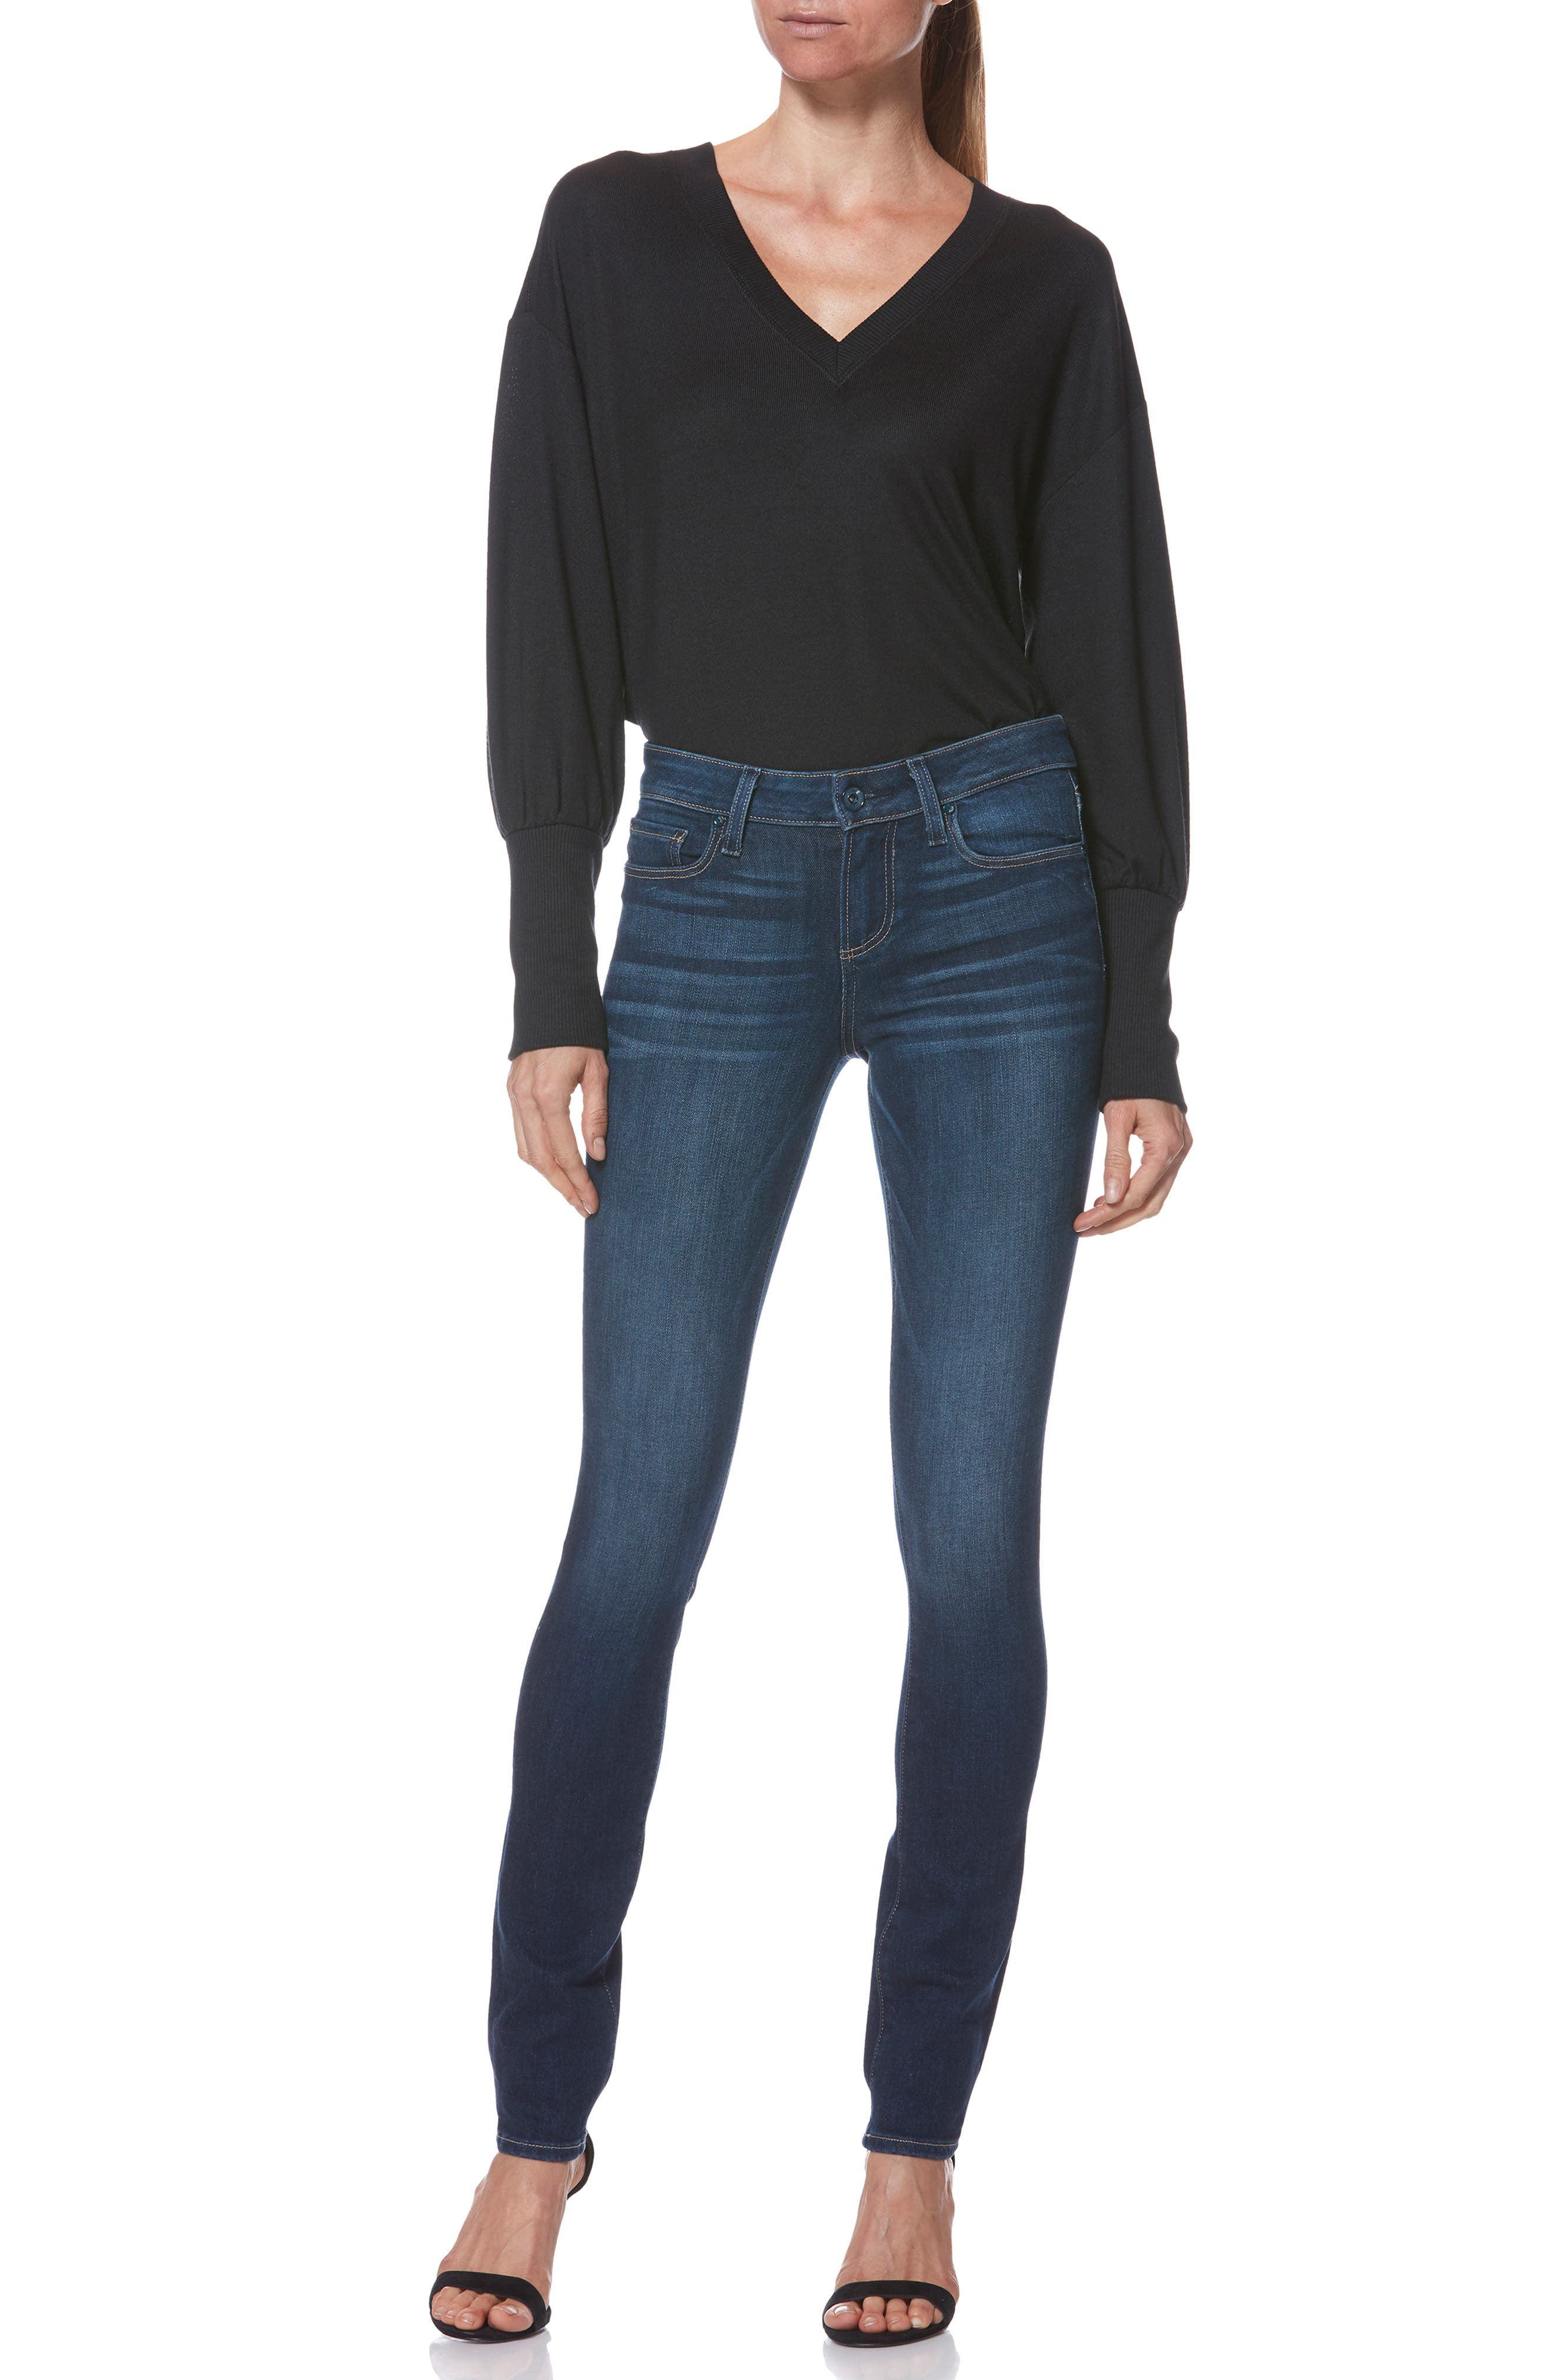 PAIGE, Skyline Skinny Jeans, Alternate thumbnail 8, color, IDLEWILD